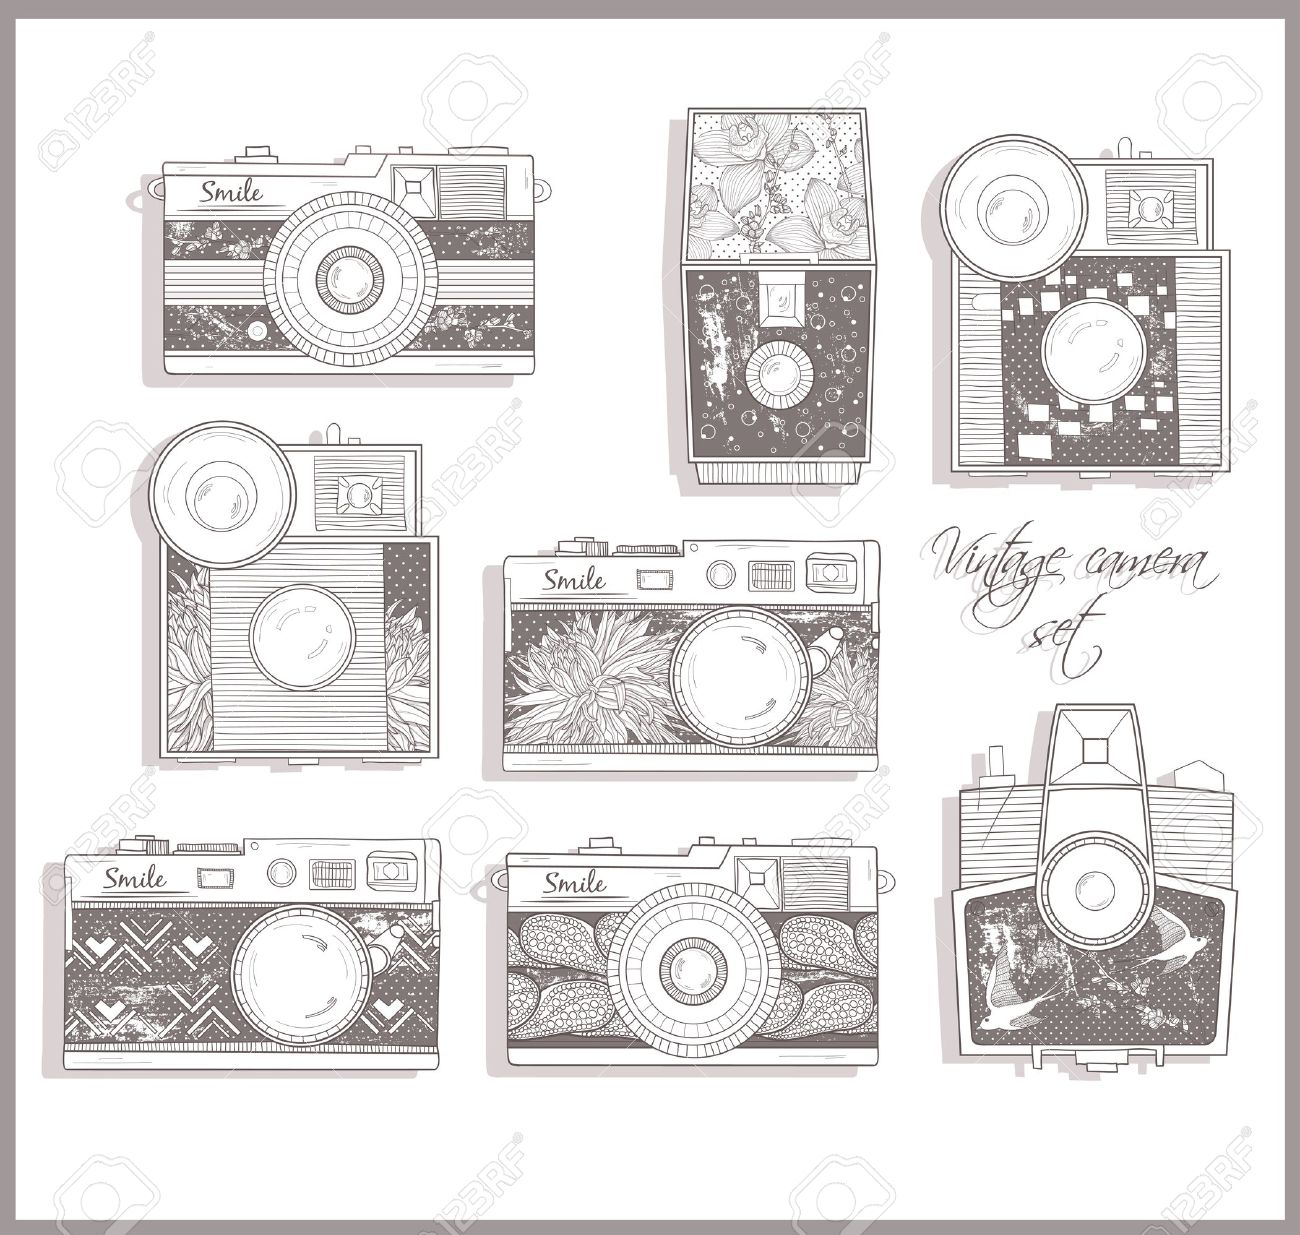 Retro photo cameras set. illustration. Vintage cameras with flowers. Camera with floral pattern. Stock Vector - 12497469